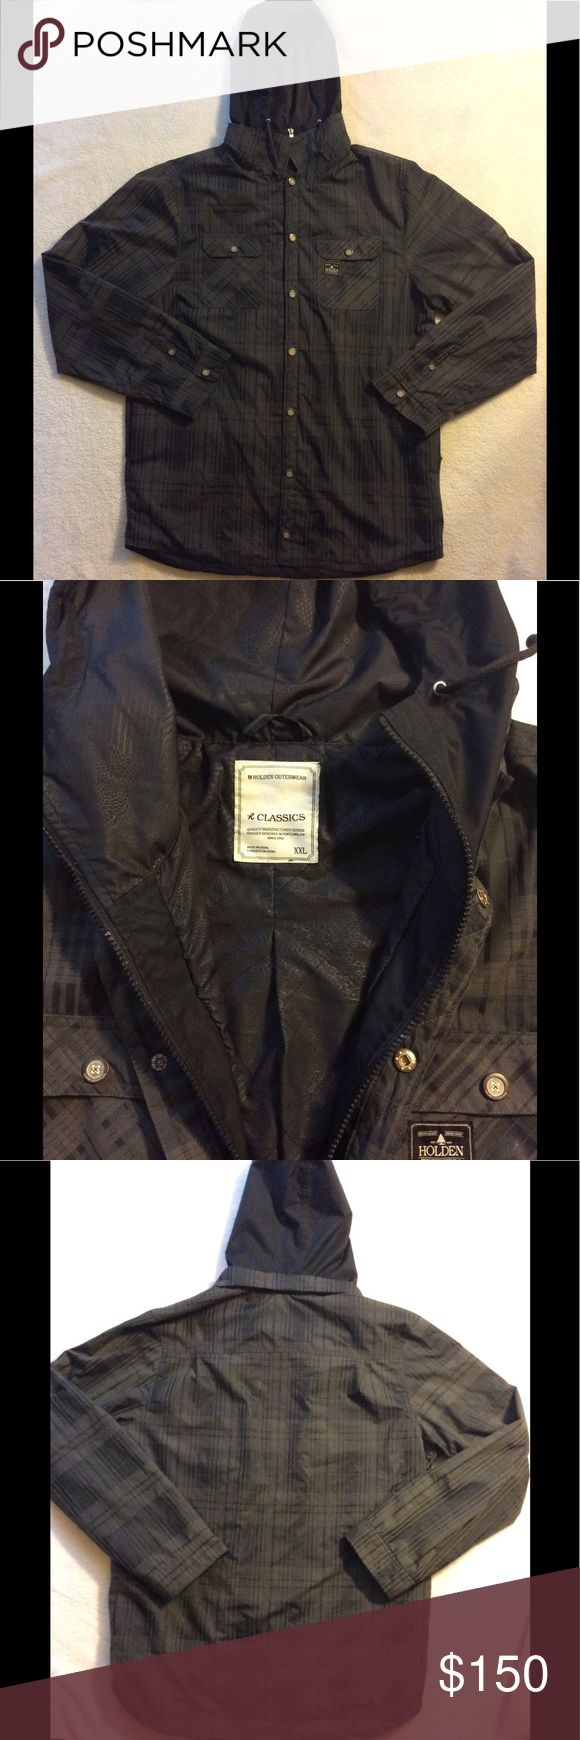 NWOT Men's Classics Snow Jacket New without tags! | Holden's Classics custom jacket                                                      Husband purchased a few years ago because it was the exact jacket he wanted and it was the only one left, but it is way too big for him | No rips or stains; like new condition Holden Jackets & Coats Ski & Snowboard